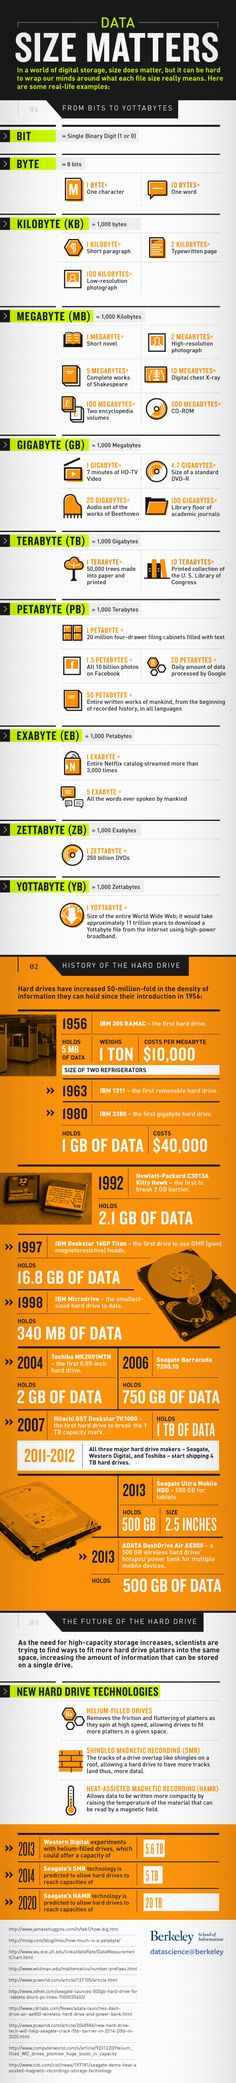 Data Size Matters in a World of Digital Storage - #entrepreneur #startups